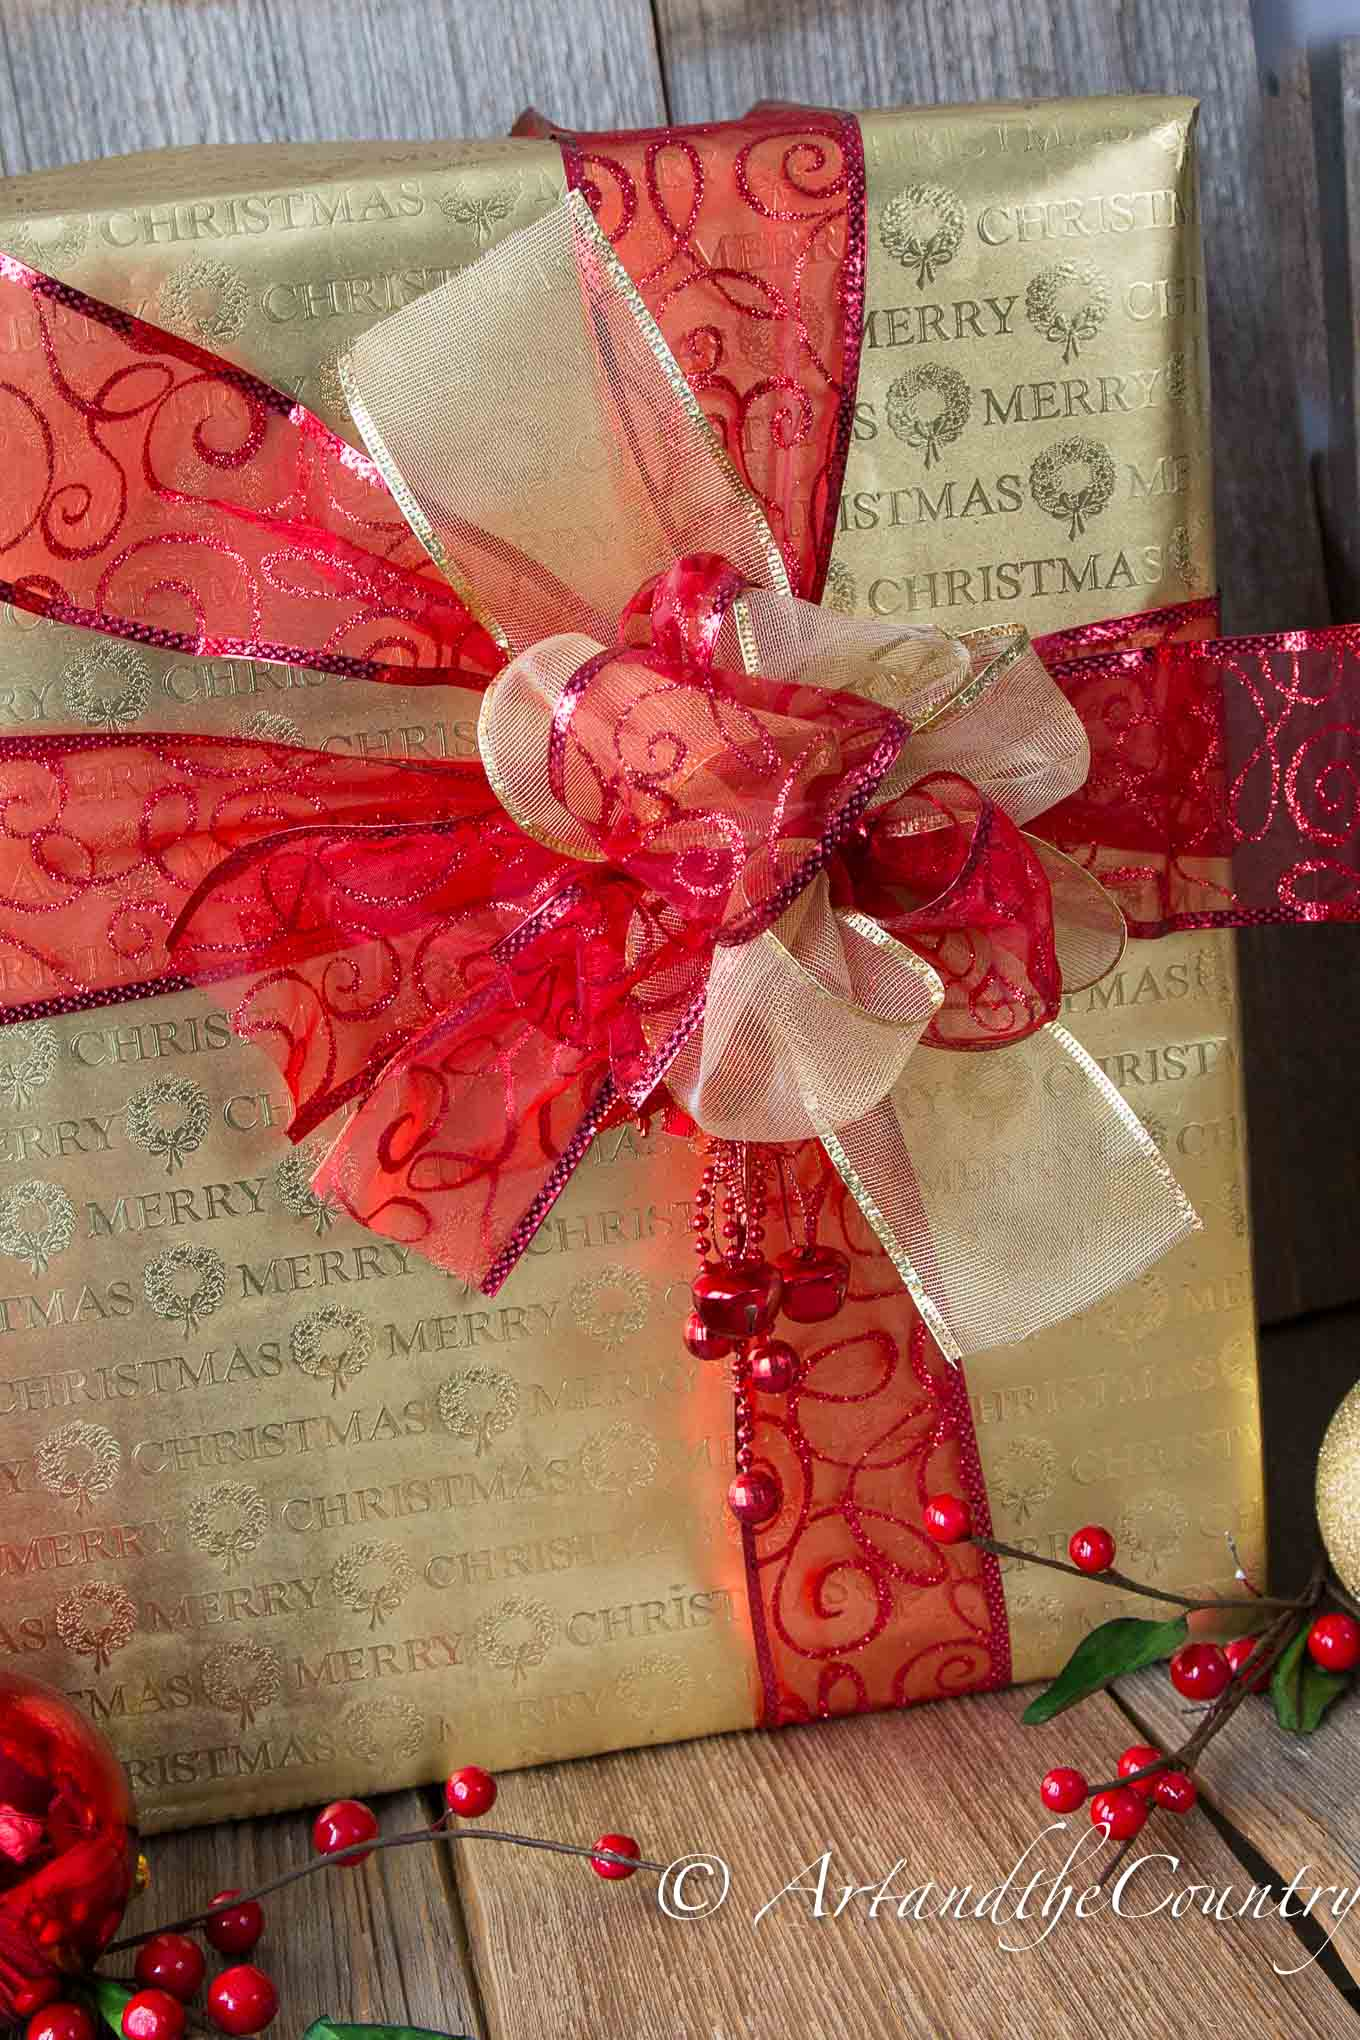 Christmas gift wrapped in gold paper with red and gold ribbon.